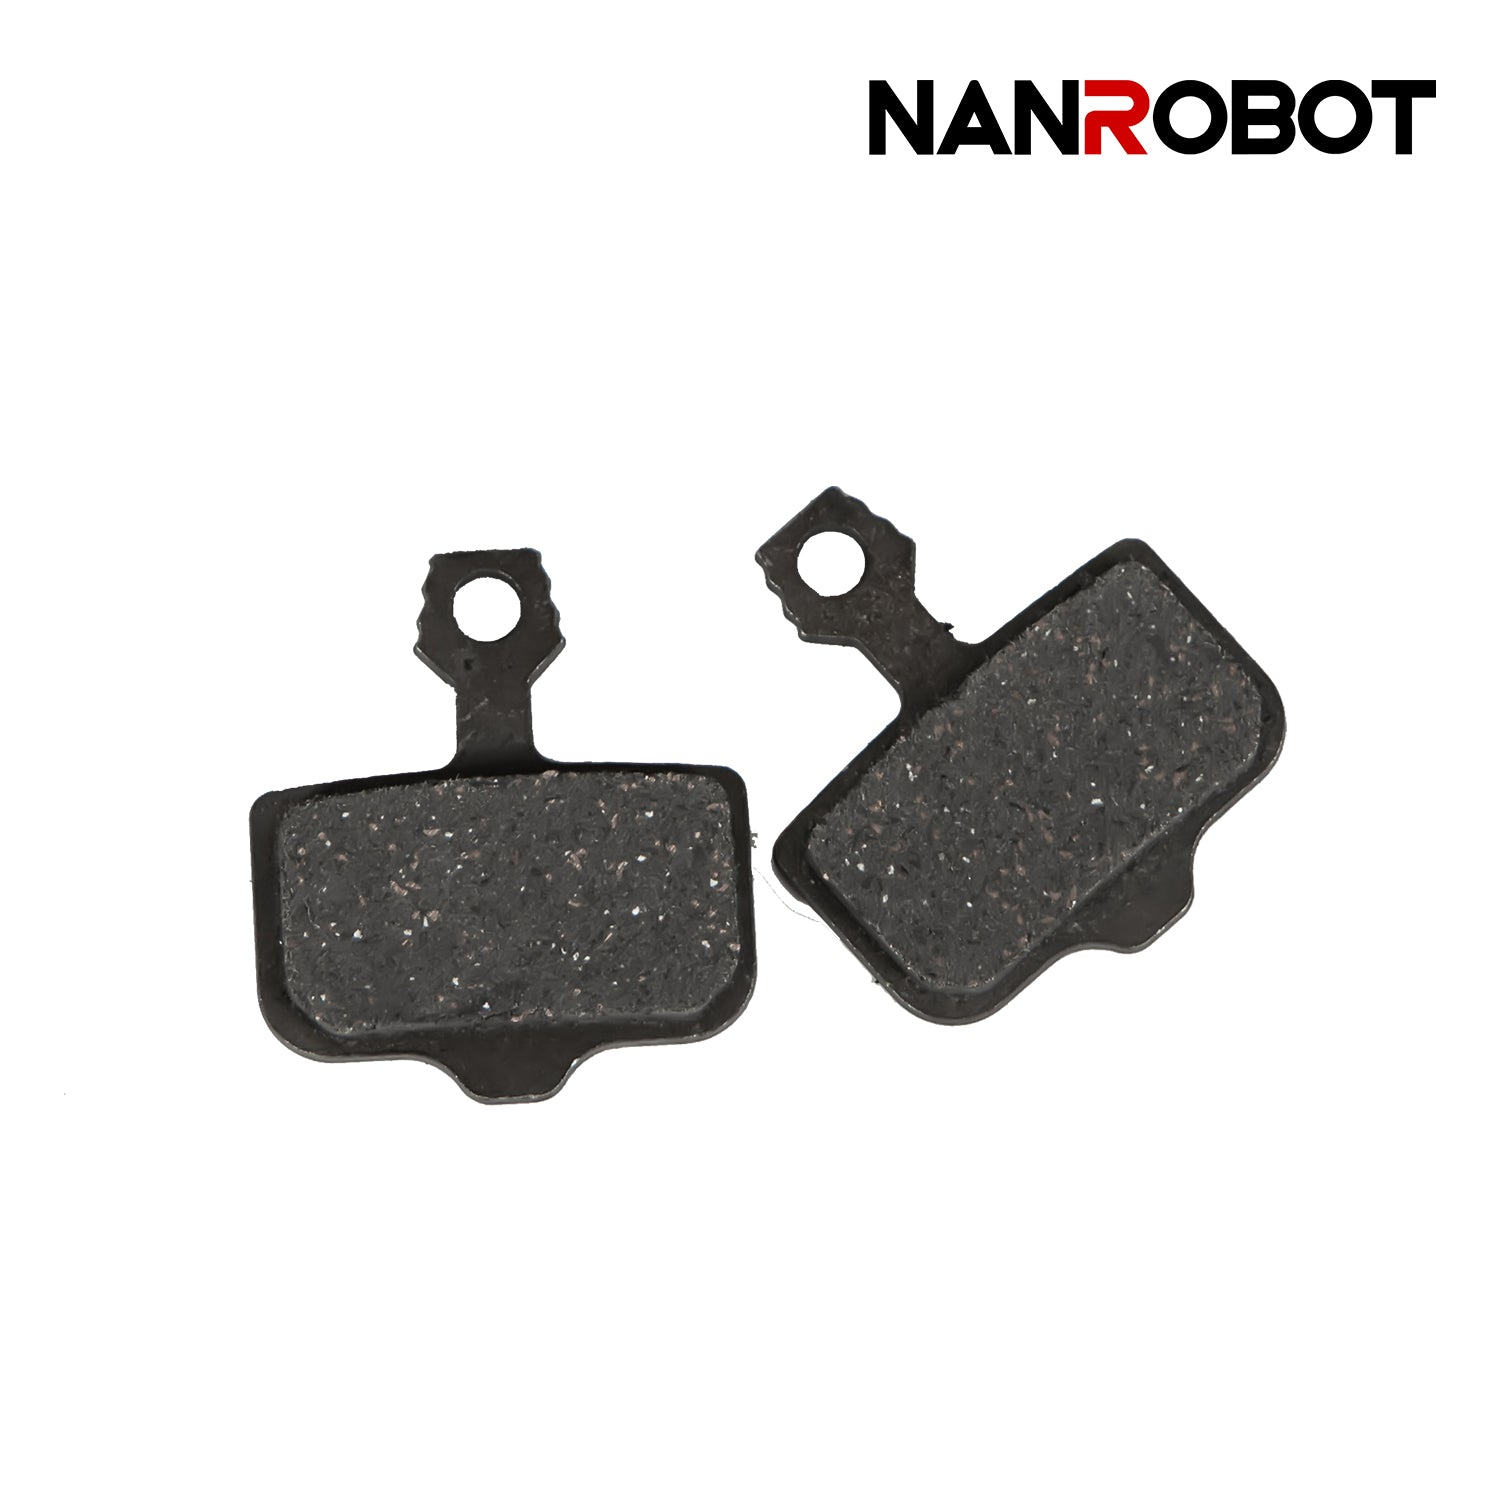 Disc Brake Pads Replacement Part for NANROBOT Electric Scooter D4 2.0//d5 for sale online